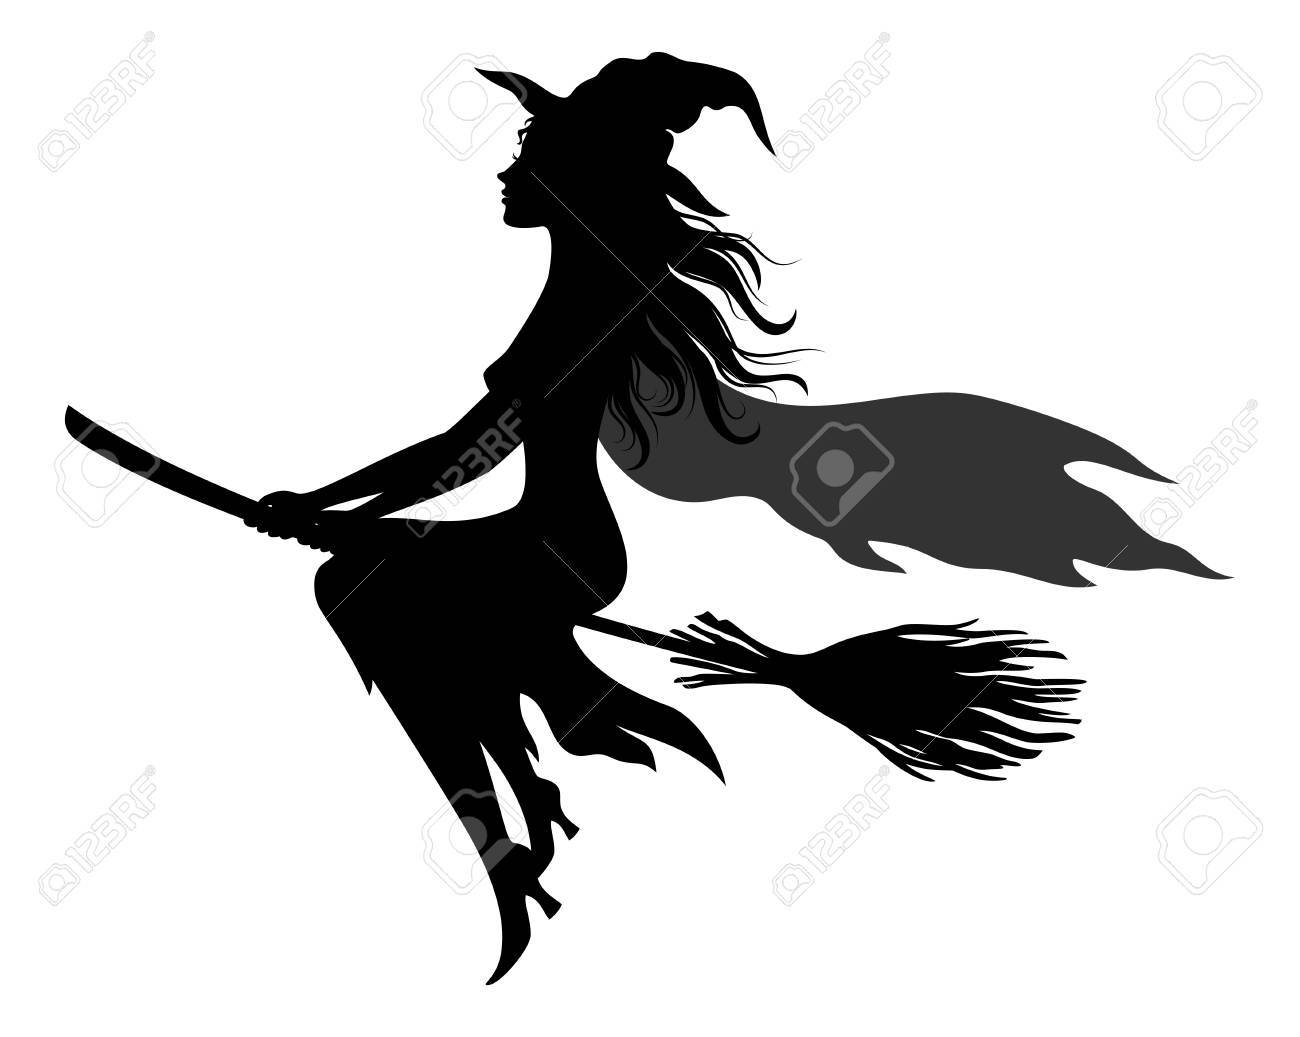 Witch Flying on Broom vector - 85781227